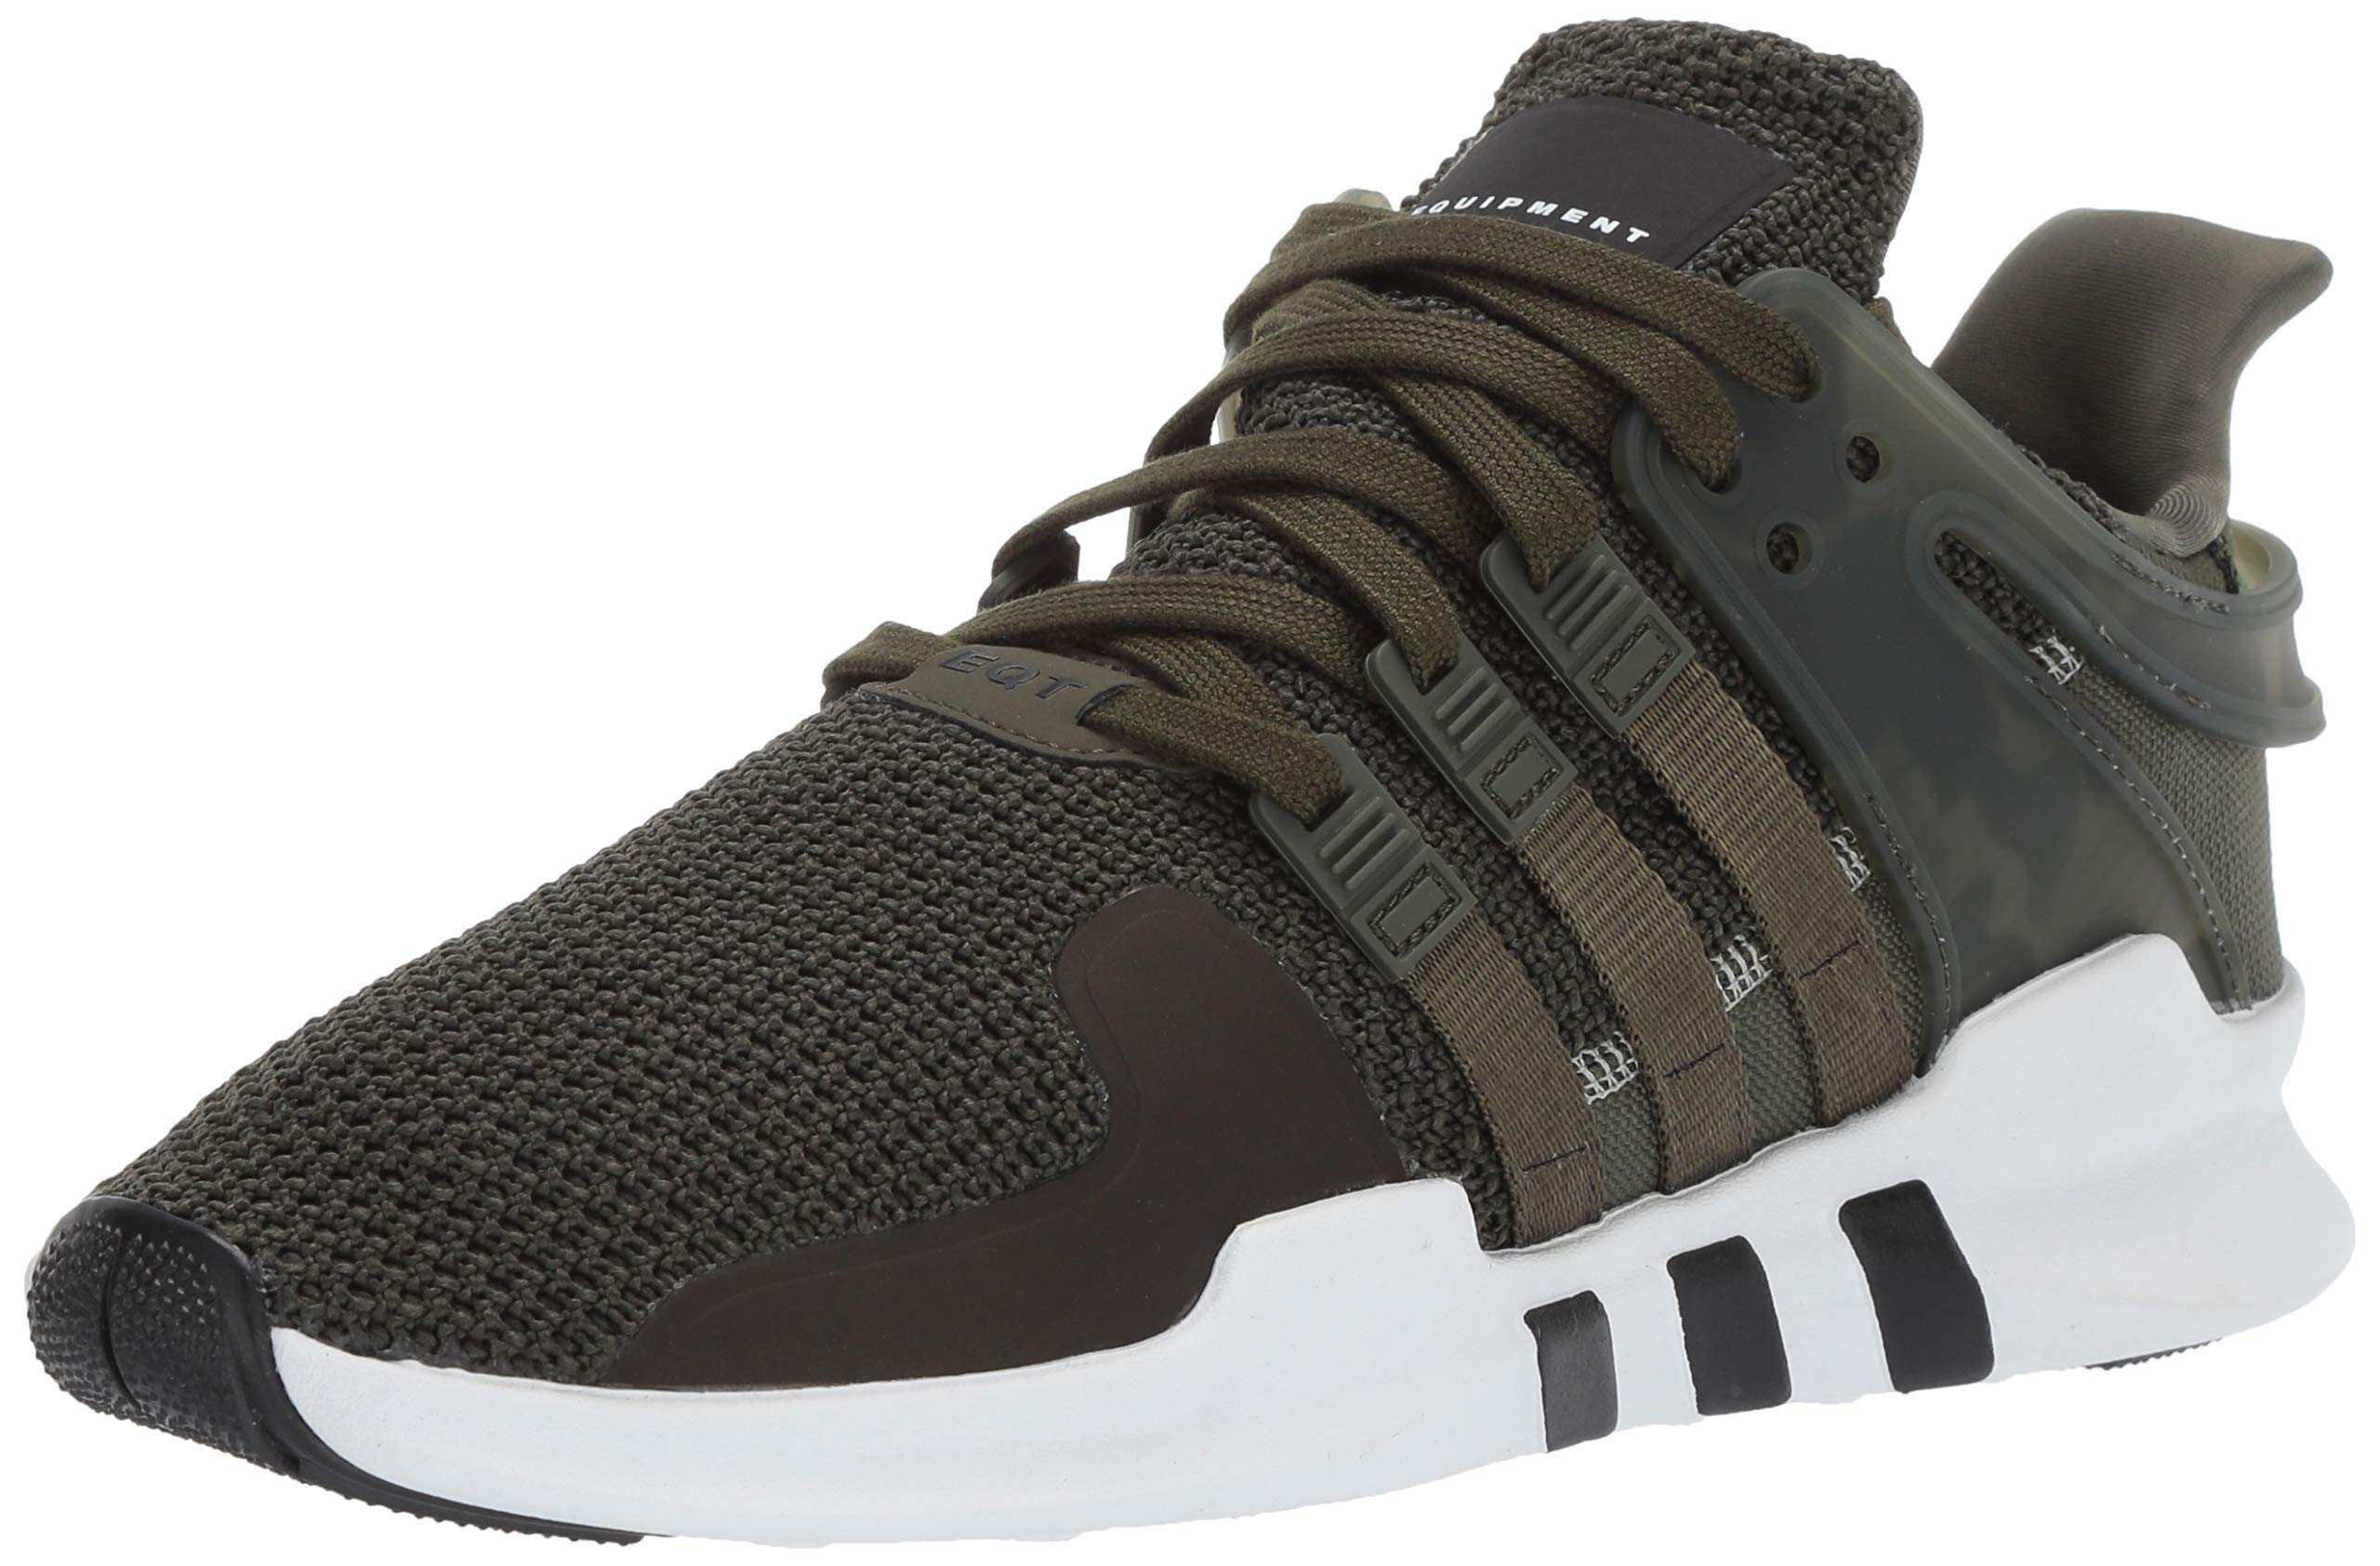 53cb4e8a243f99 Galleon - Adidas Men s Eqt Support Adv Fashion Sneaker